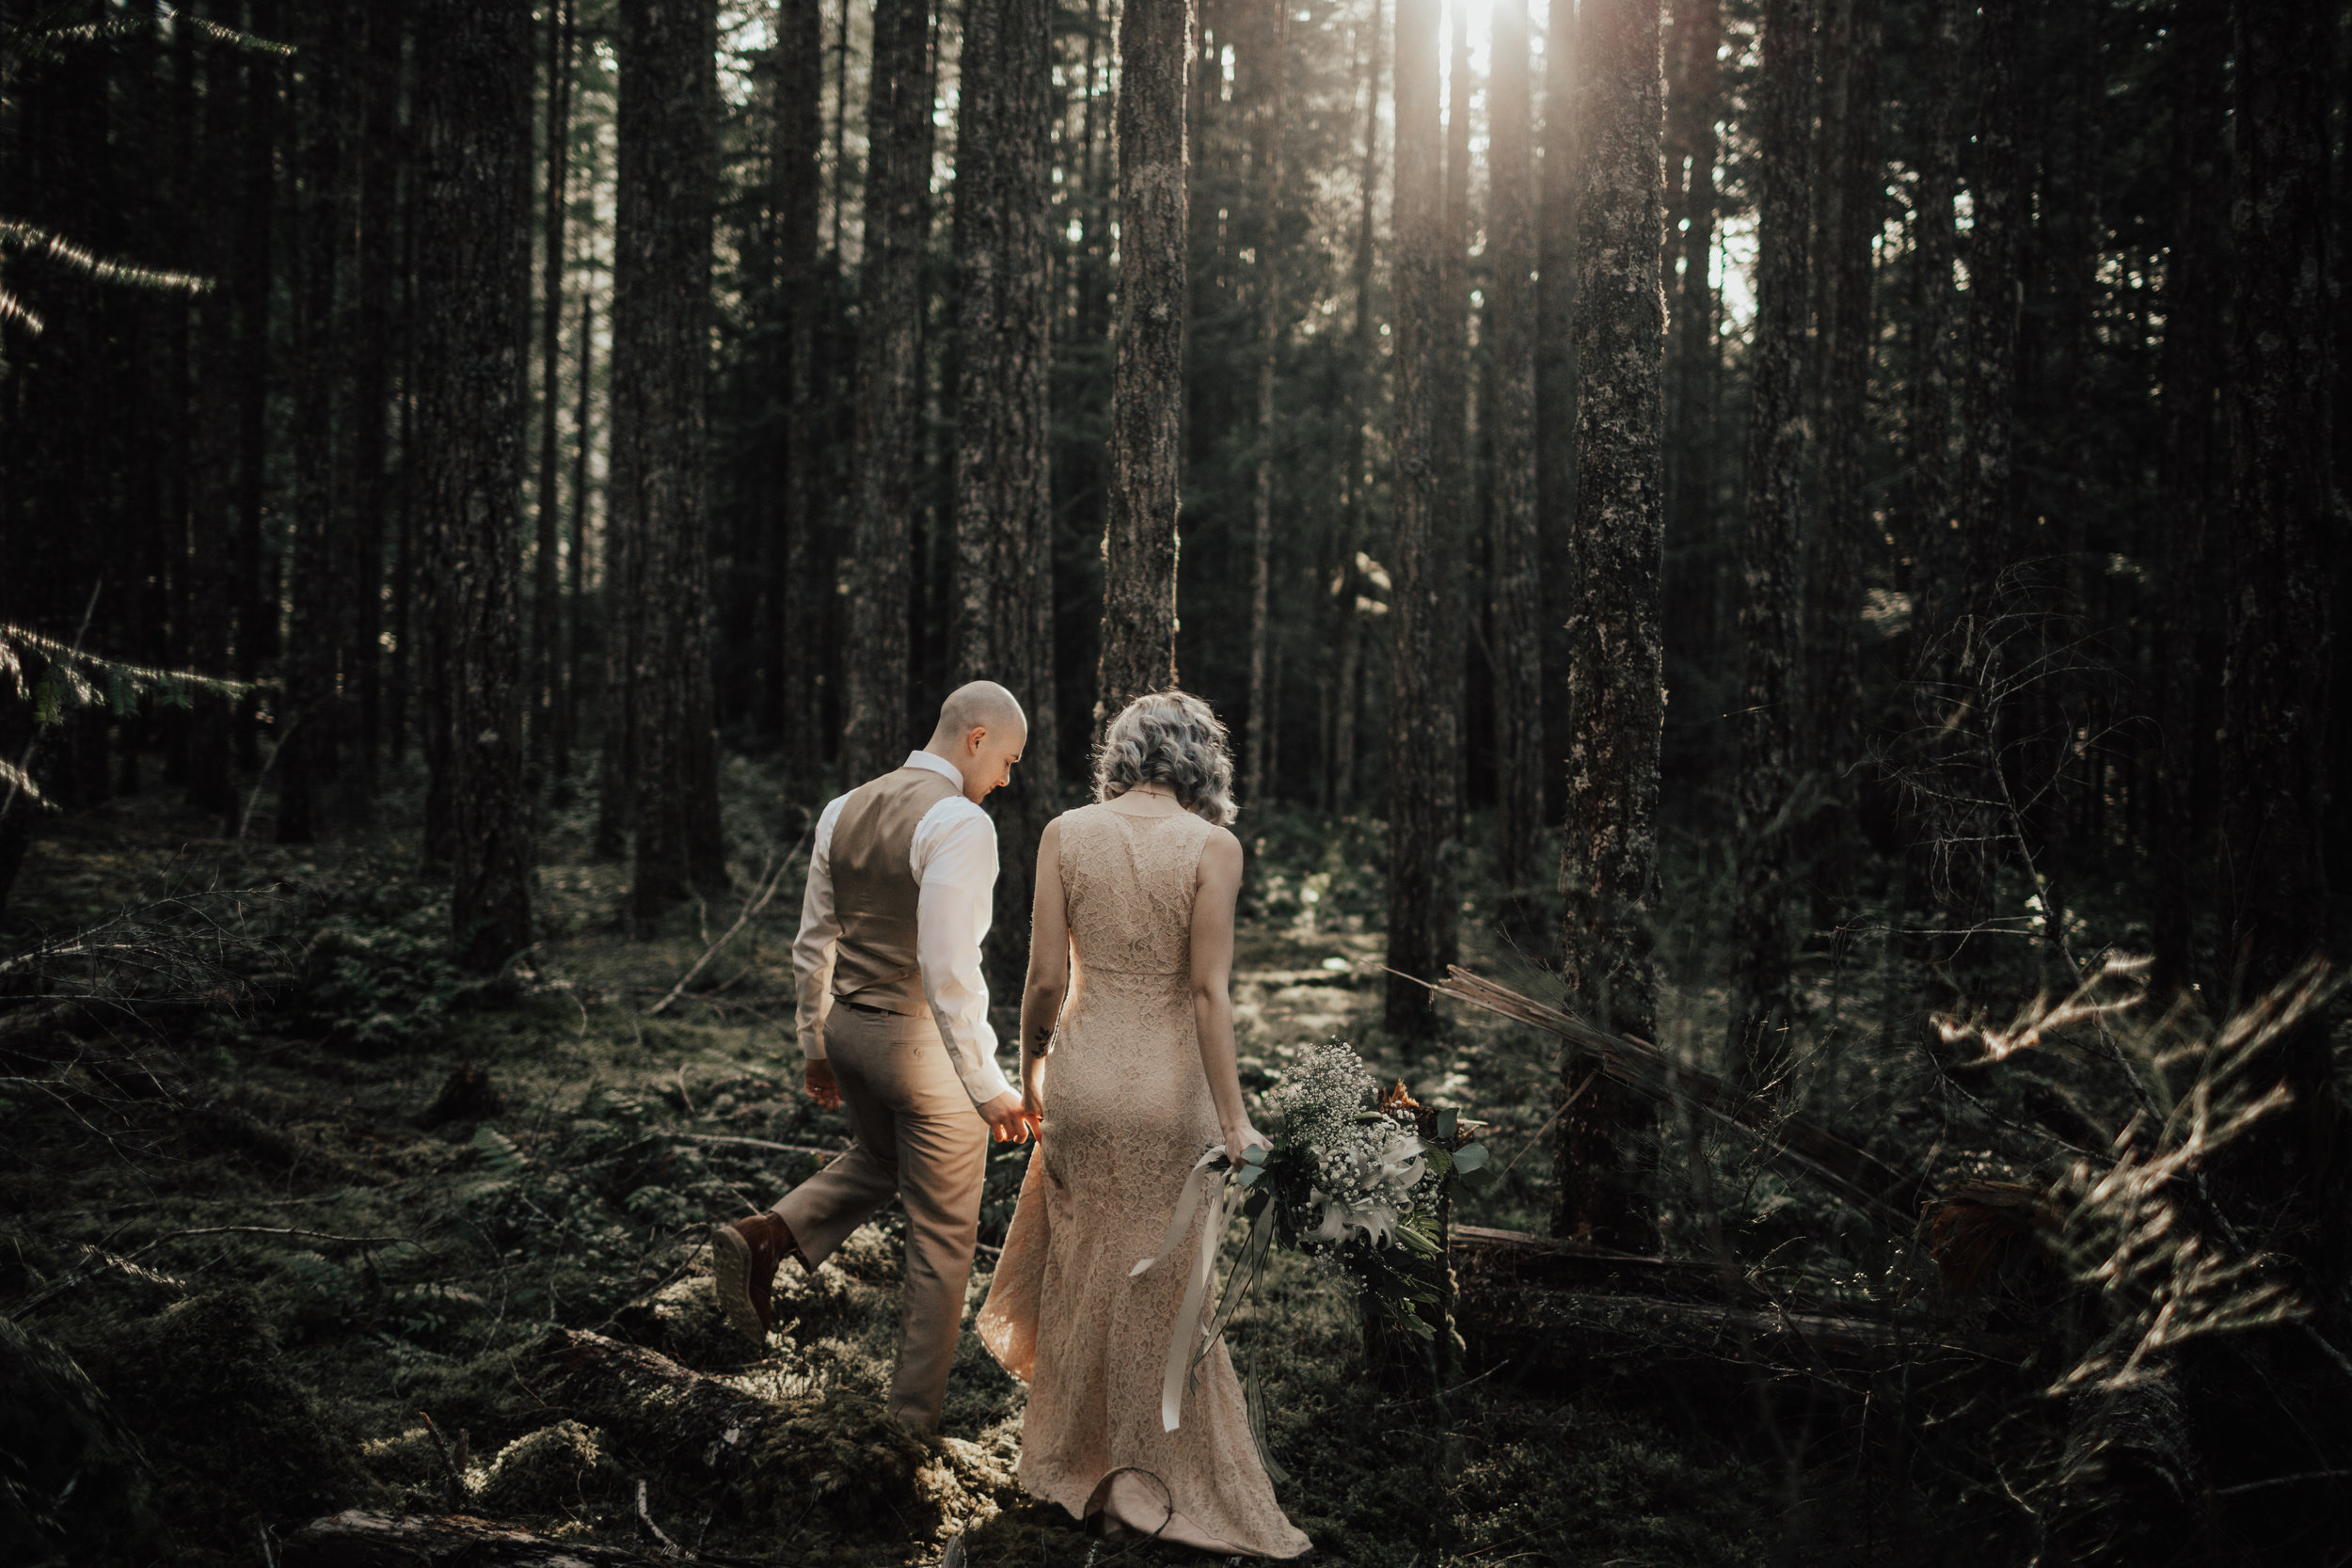 Port+Angeles-PNW-Sequim-Portrait-wedding-elopement-photographer-kayladawnphoto-kayla+dawn+photography-olympic+peninsula-portraiture22.jpg